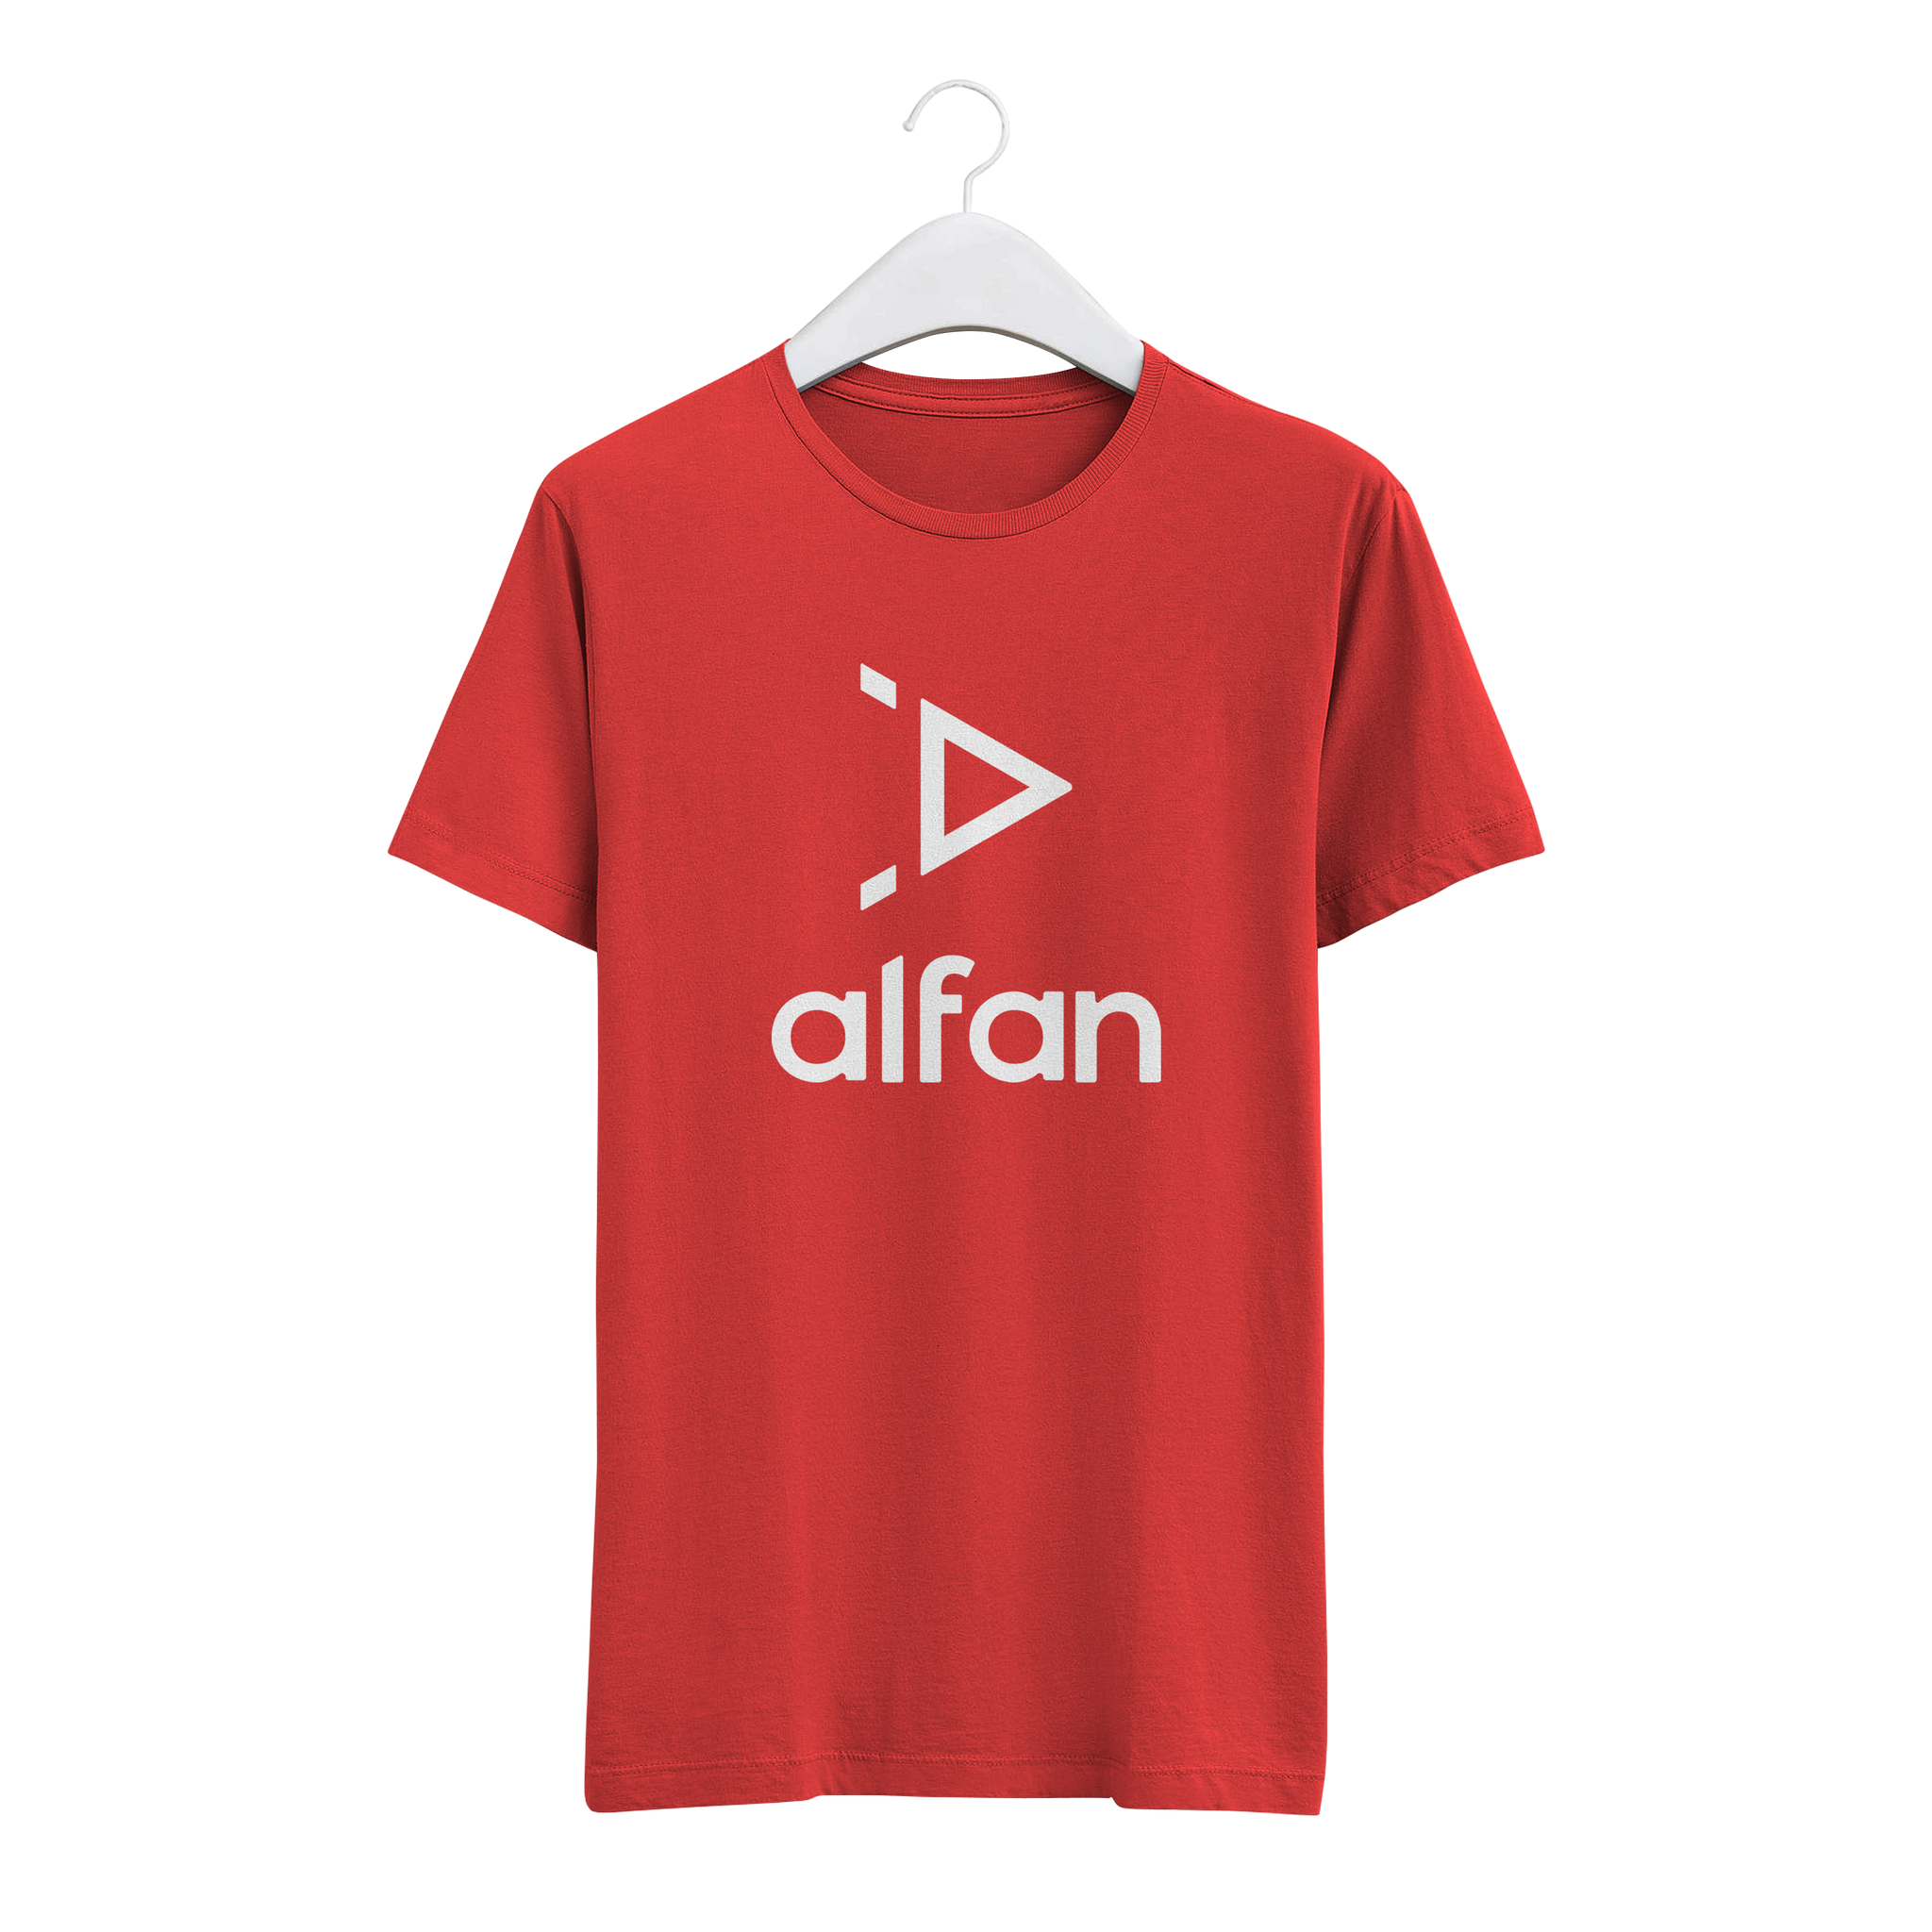 Alfan Red T-Shirt